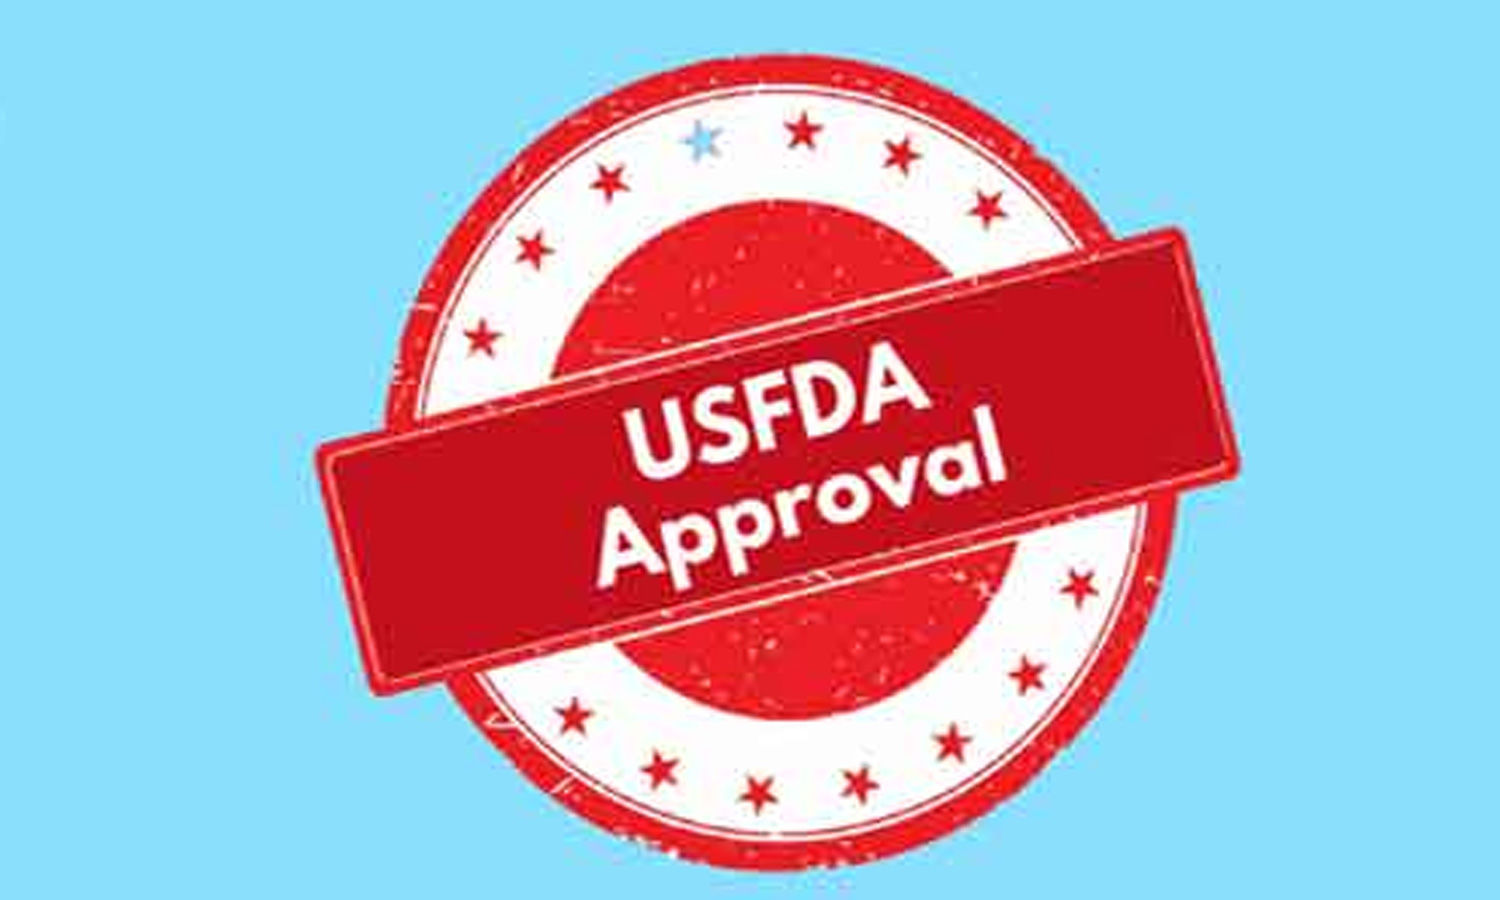 USFDA accepts regulatory submission for tanezumab for management of chronic pain  due to osteoarthritis